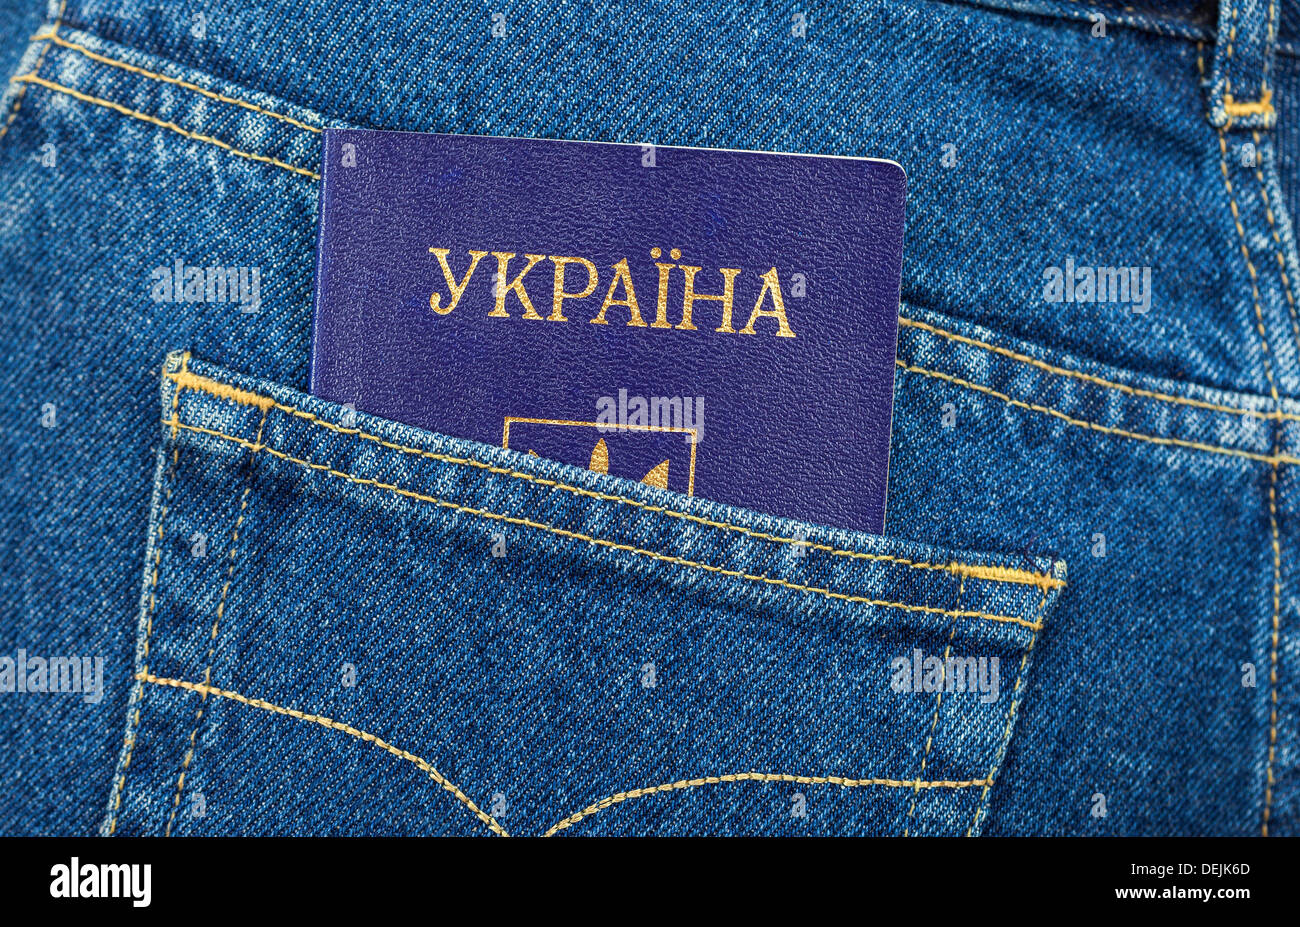 Ukraine passport in the back jeans pocket - Stock Image